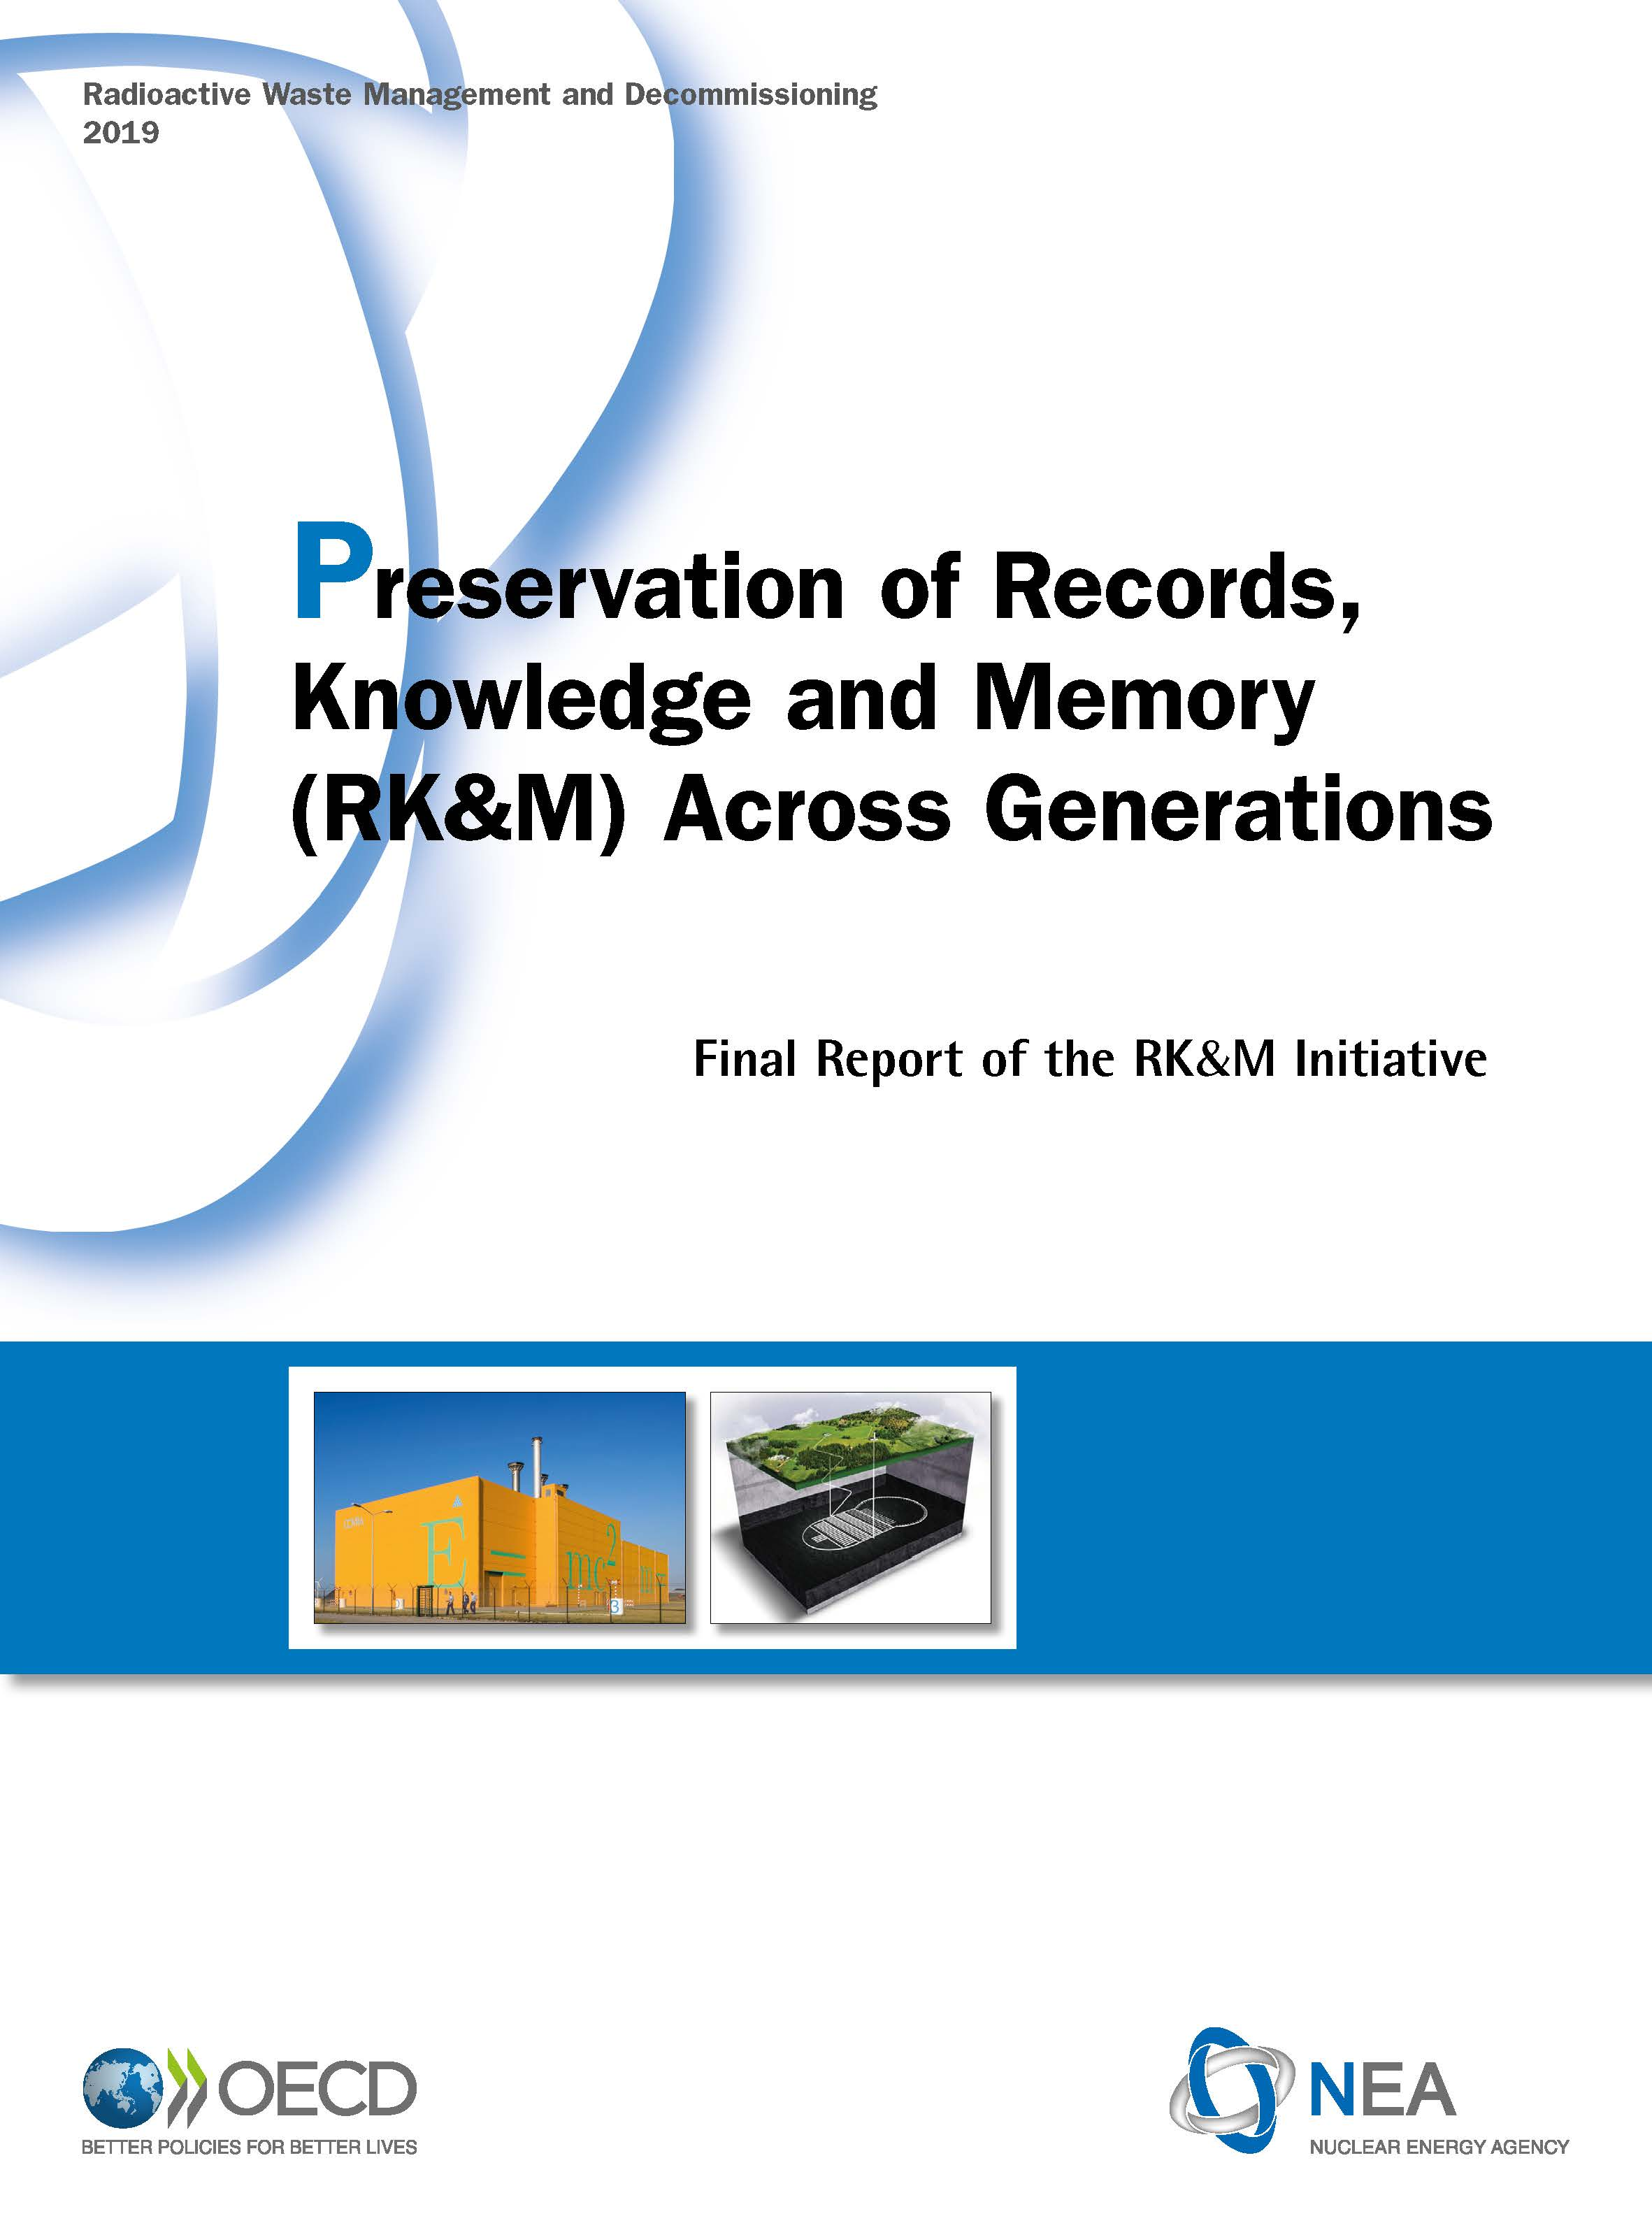 Preservation of Records, Knowledge and Memory (RK&M) Across Generations